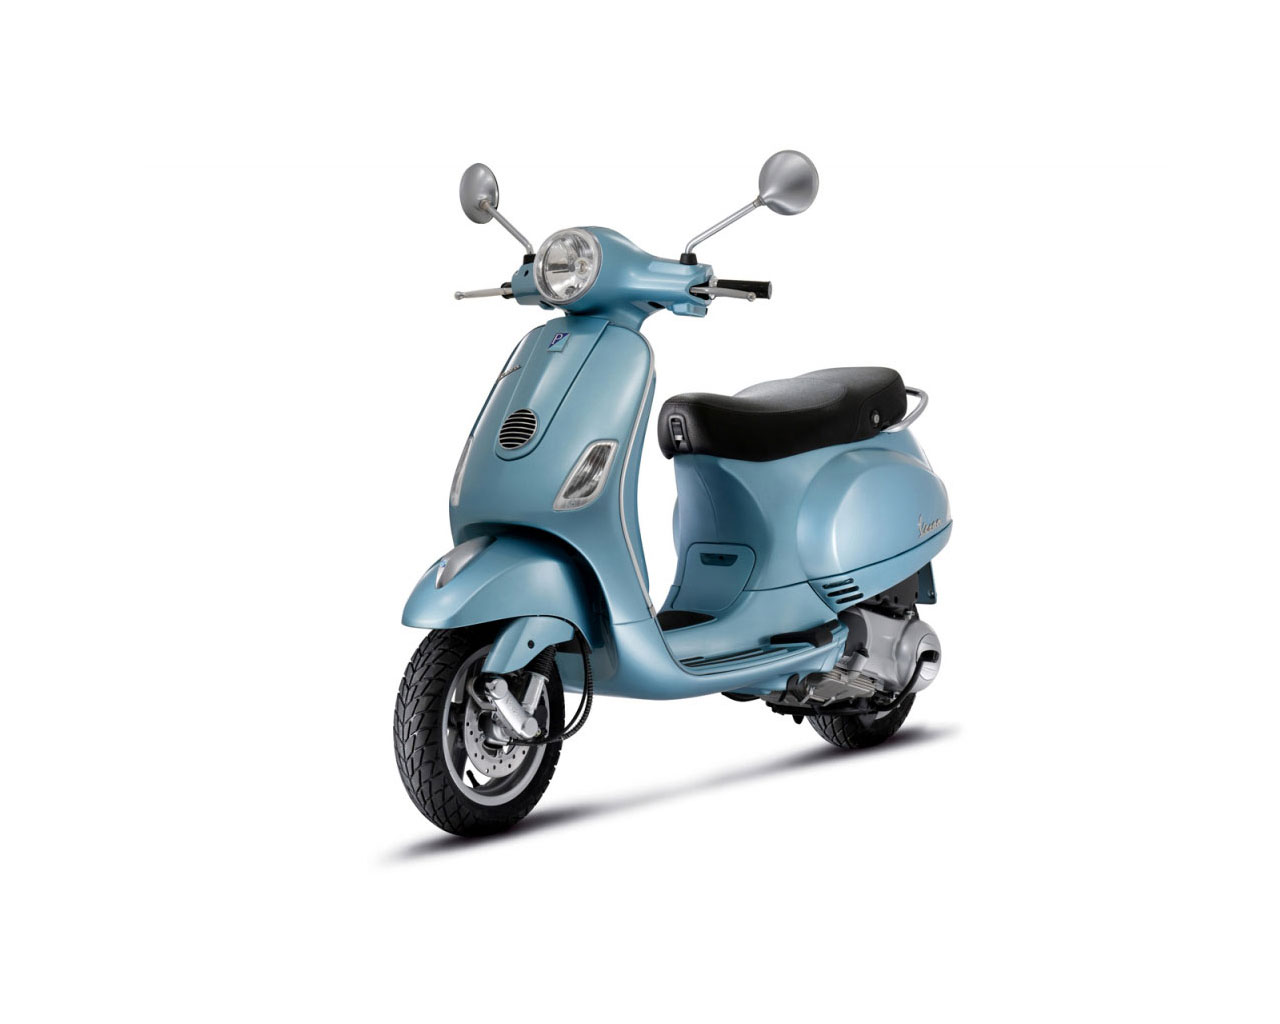 vespa lx 50 4v vespa scooters. Black Bedroom Furniture Sets. Home Design Ideas